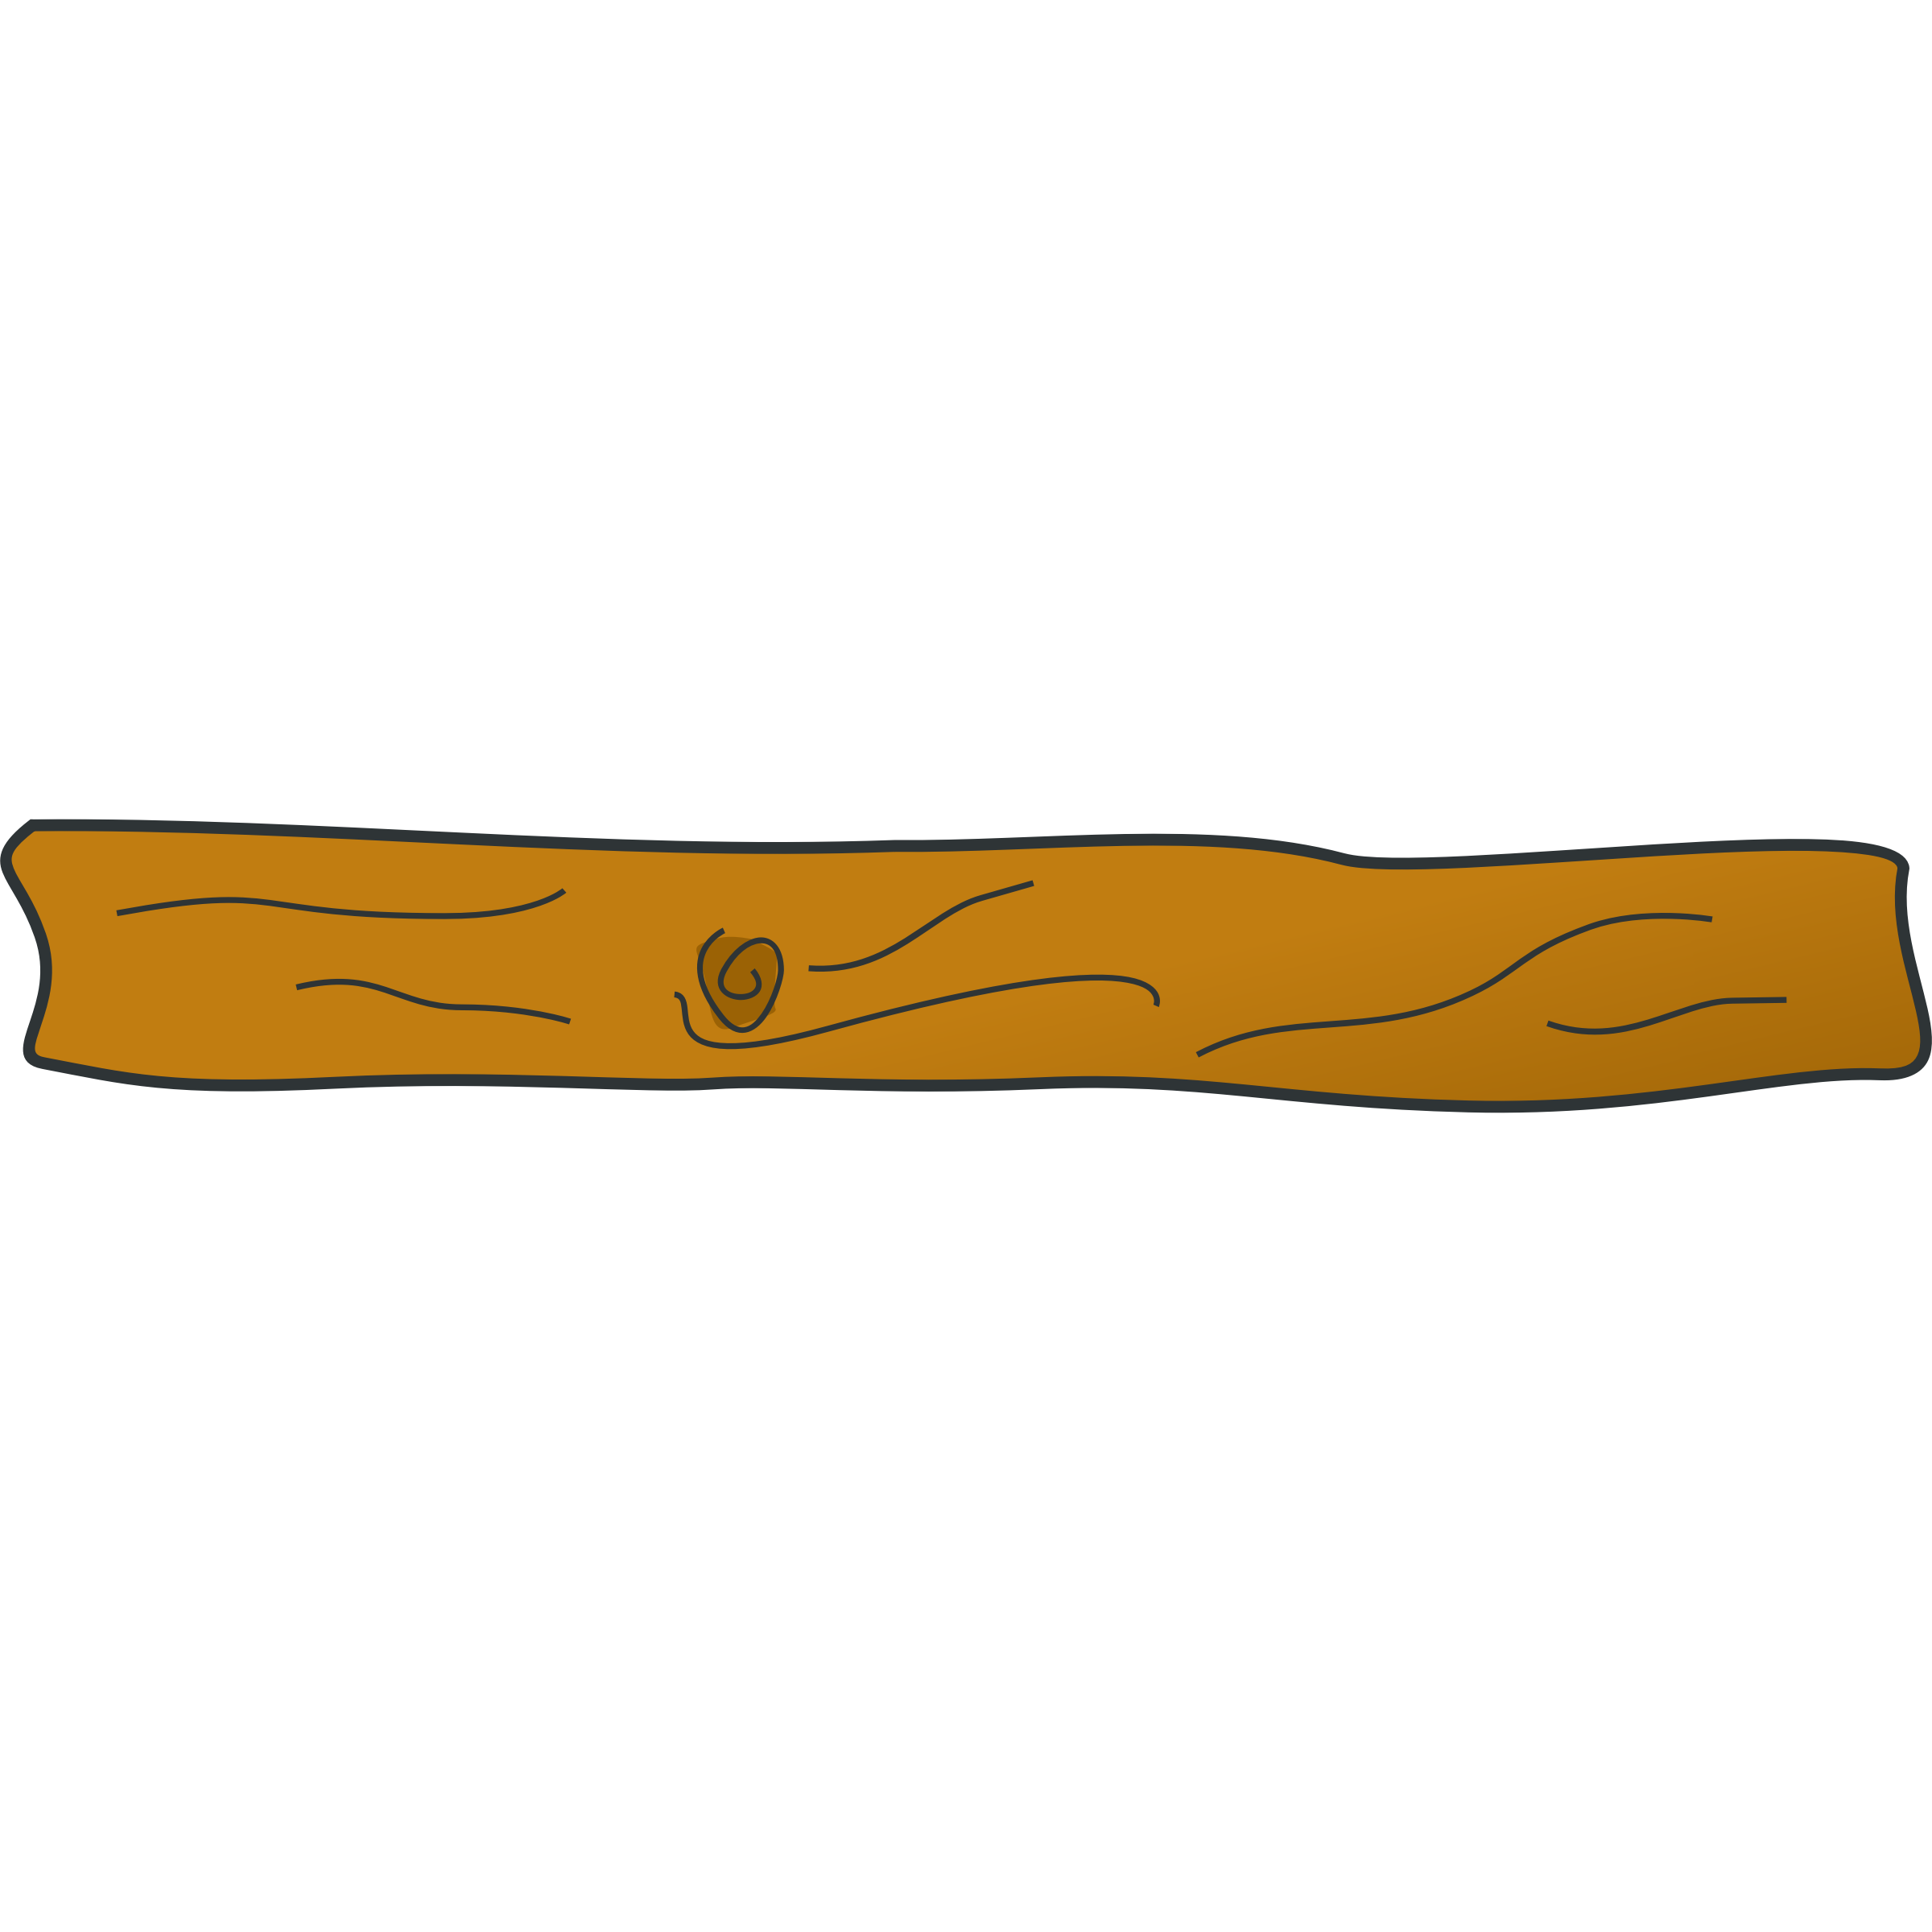 Free Plank Cliparts, Download Free Clip Art, Free Clip Art.